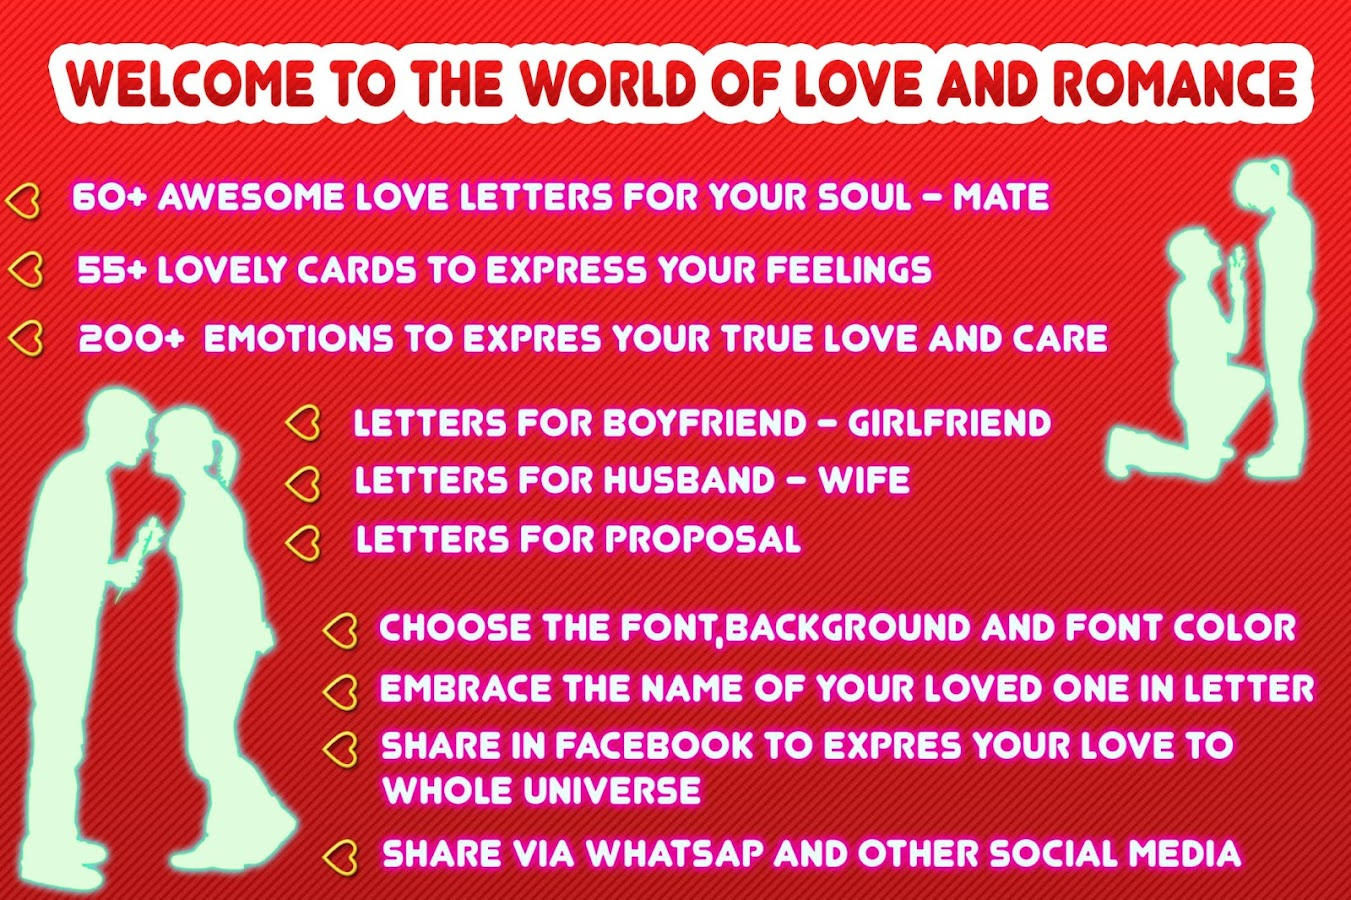 Romantic Love Letters Android Apps on Google Play